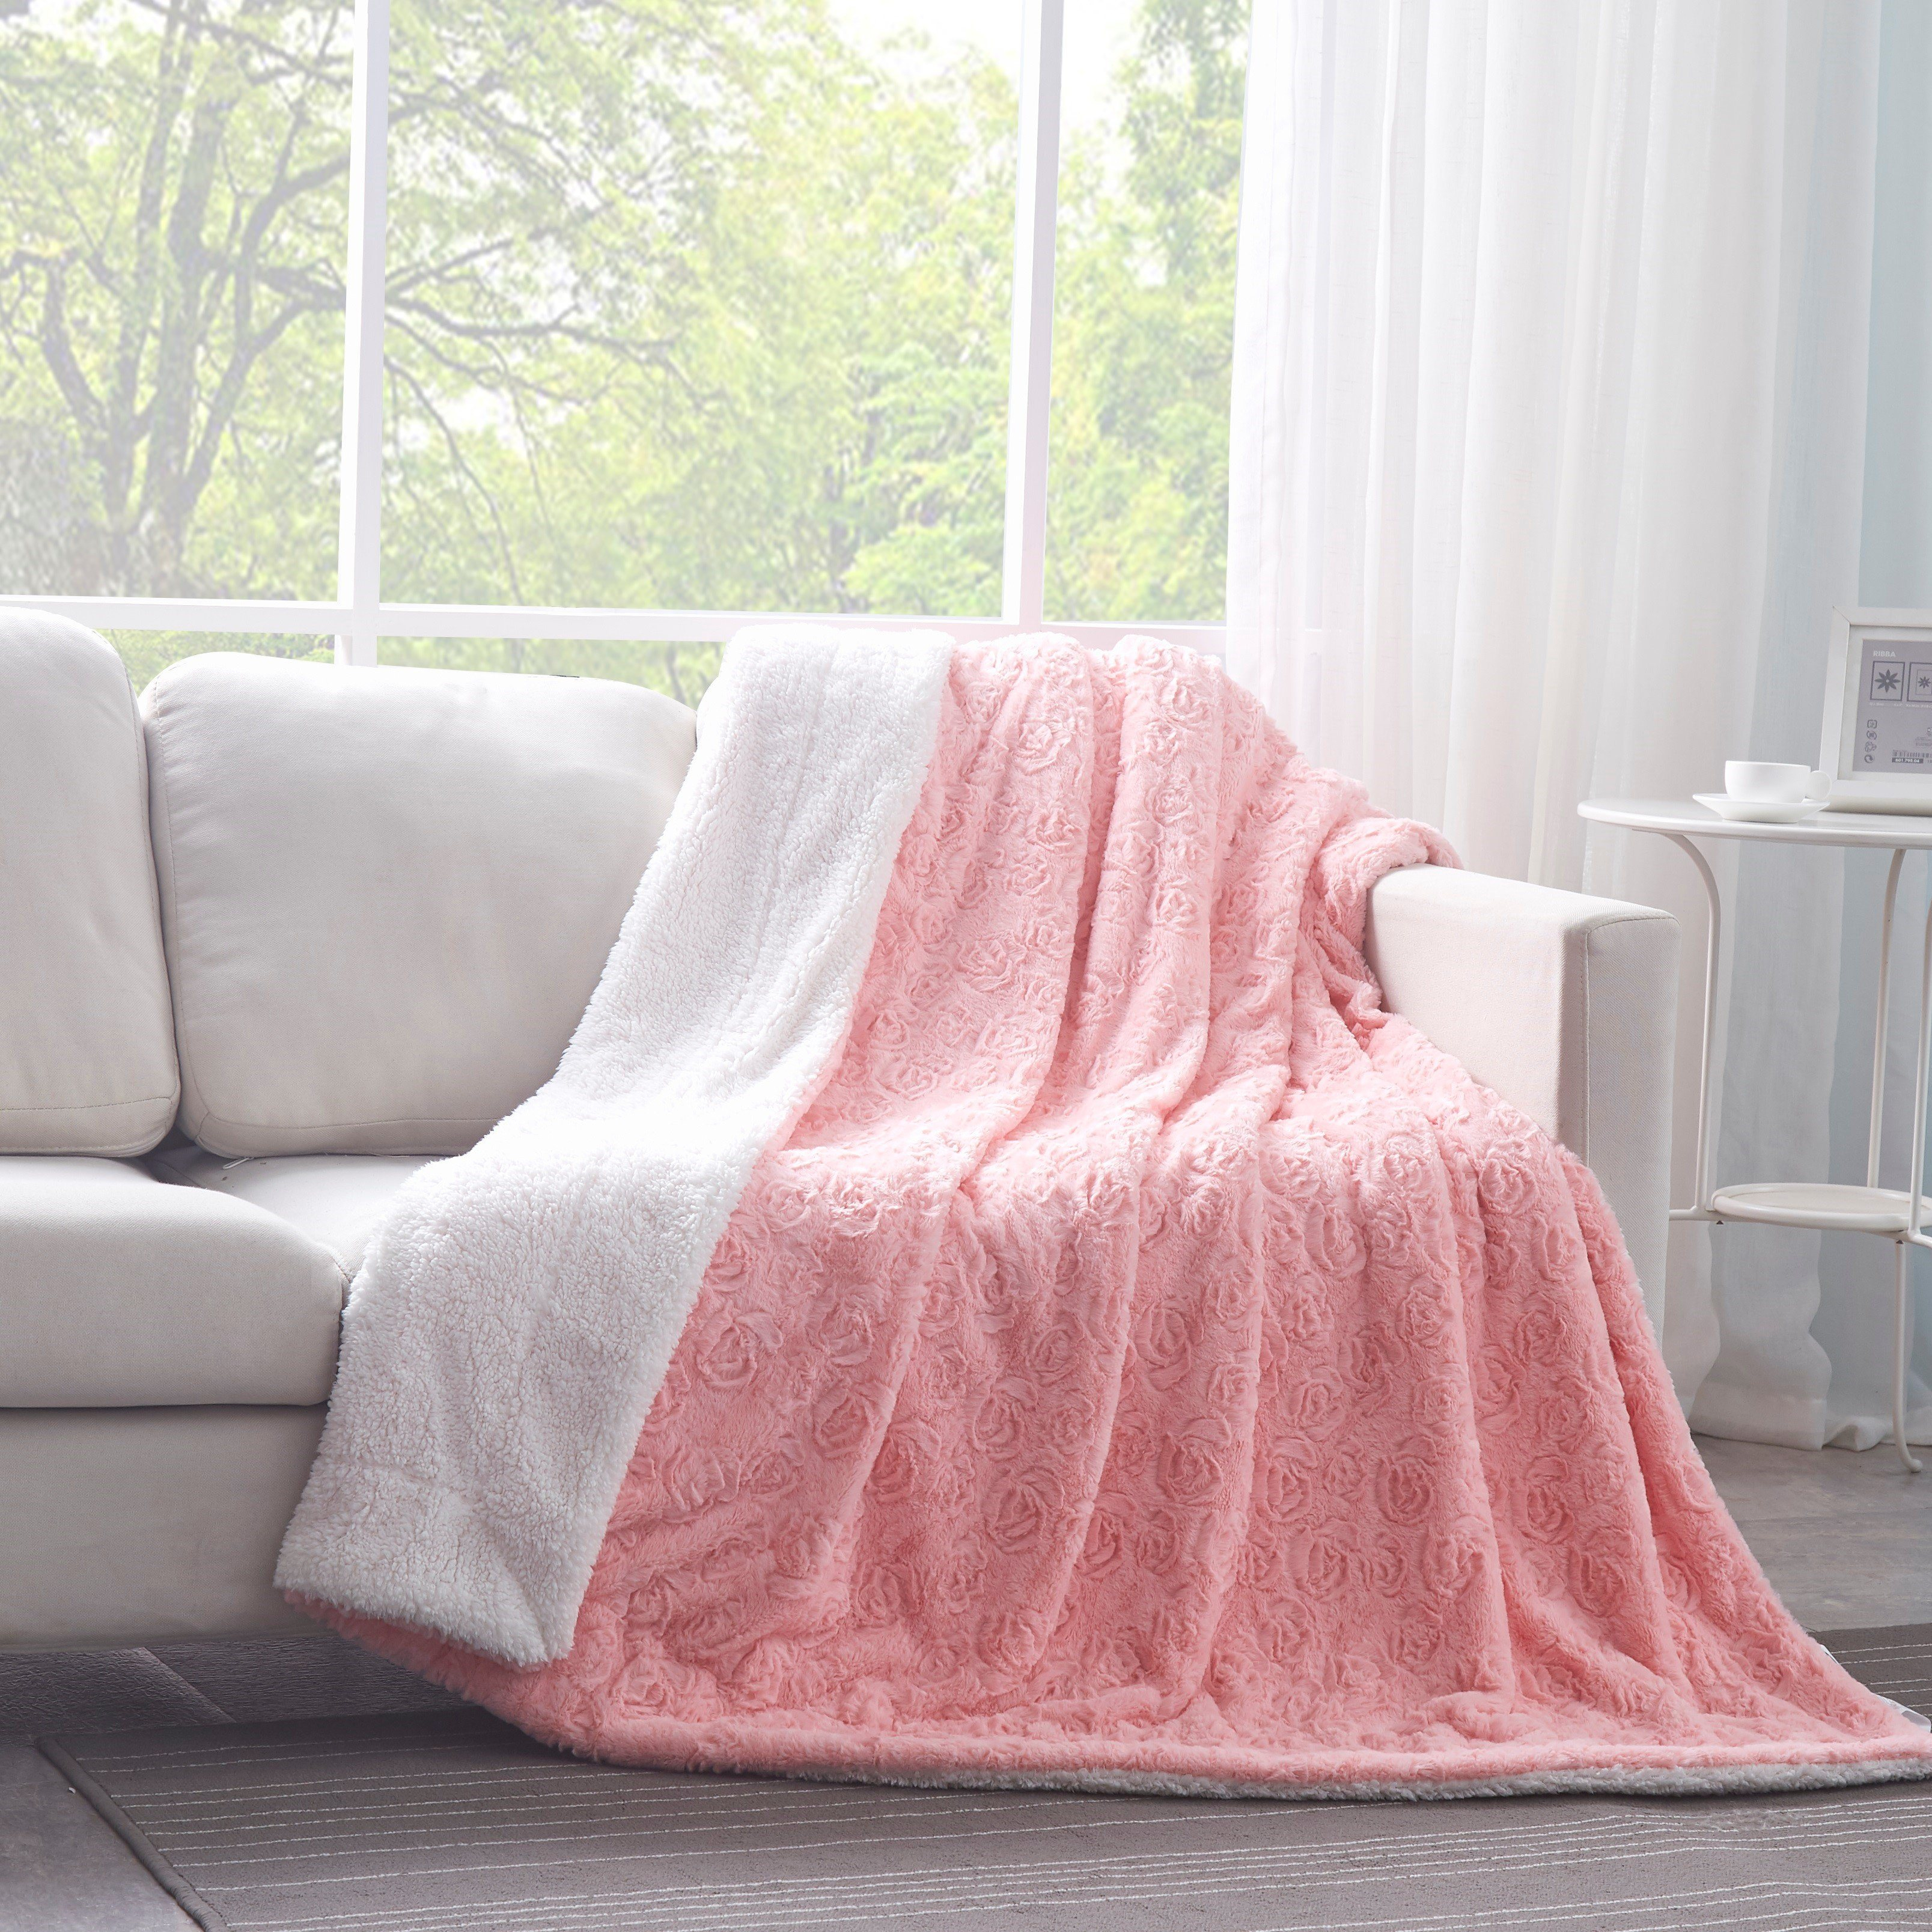 Image of DaDa Bedding Luxury Blossom Rose Buds Cherry Blossom Pink Faux Fur w/ Sherpa Backside Throw Blanket (BL-171752)